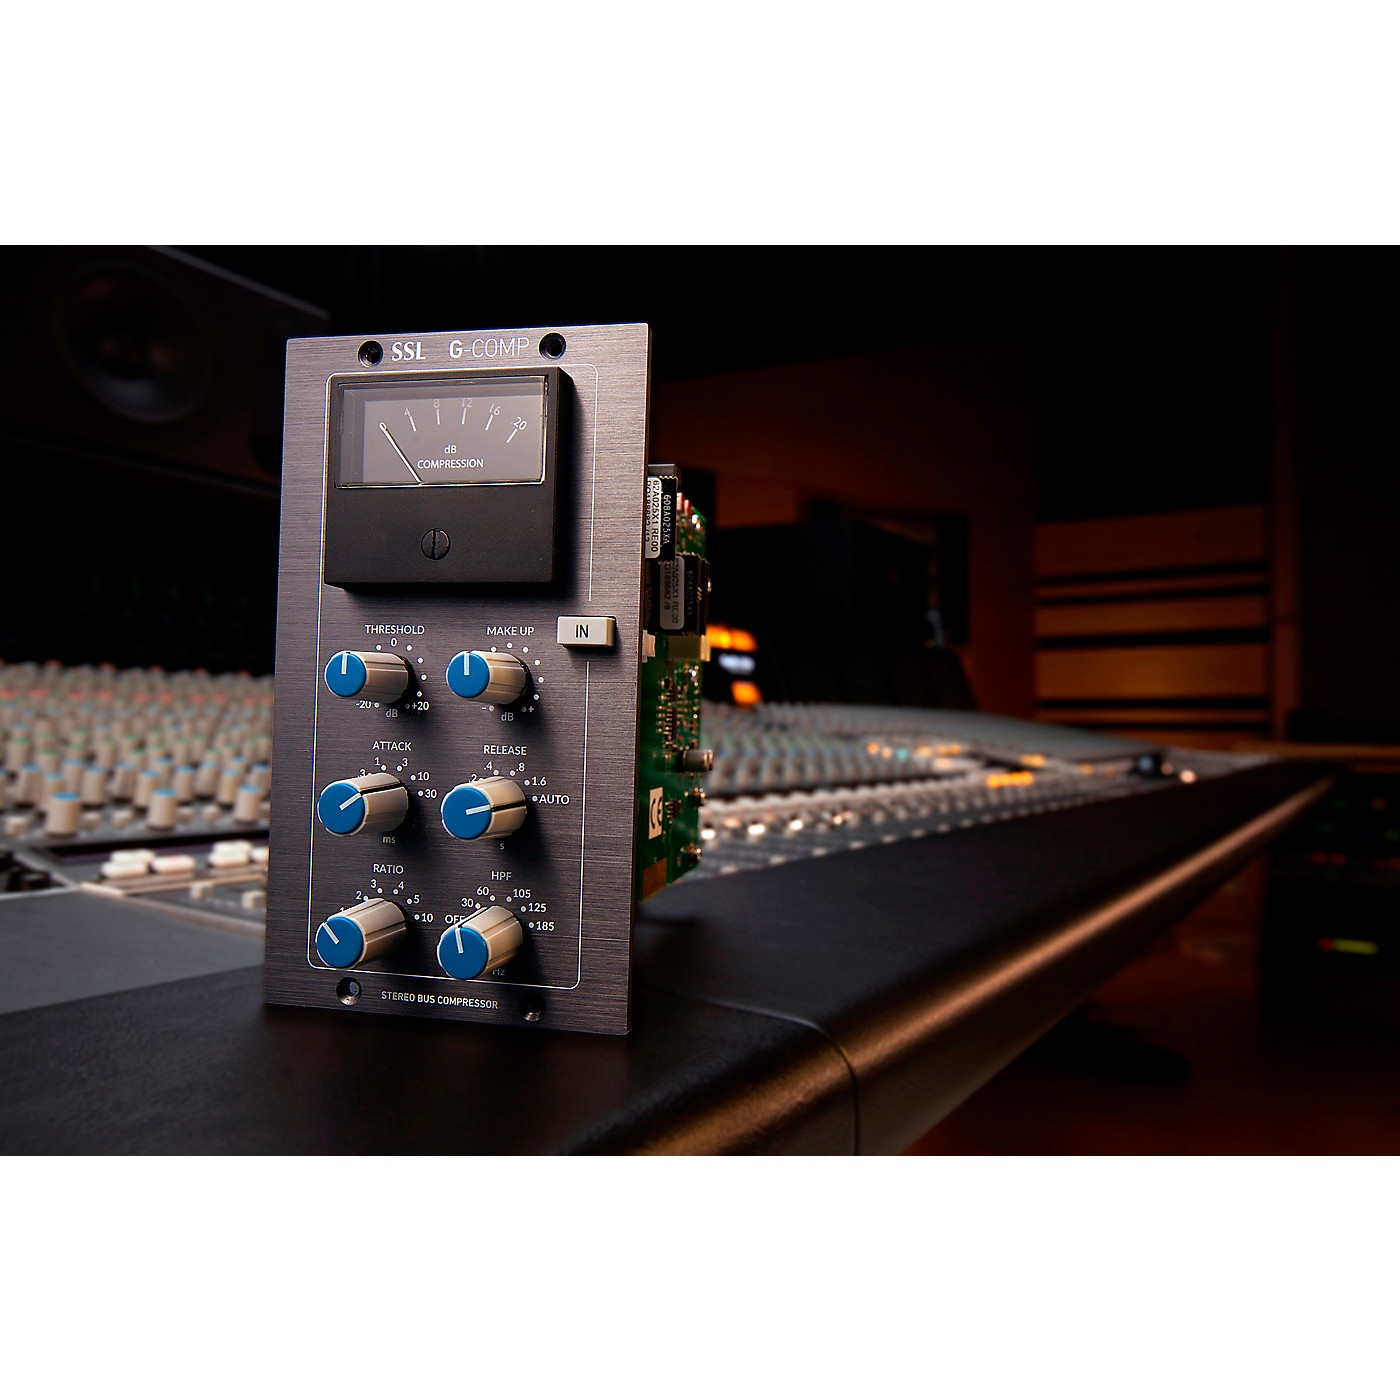 Solid State Logic Stereo Buss Compressor 500 Series Compressor thumbnail